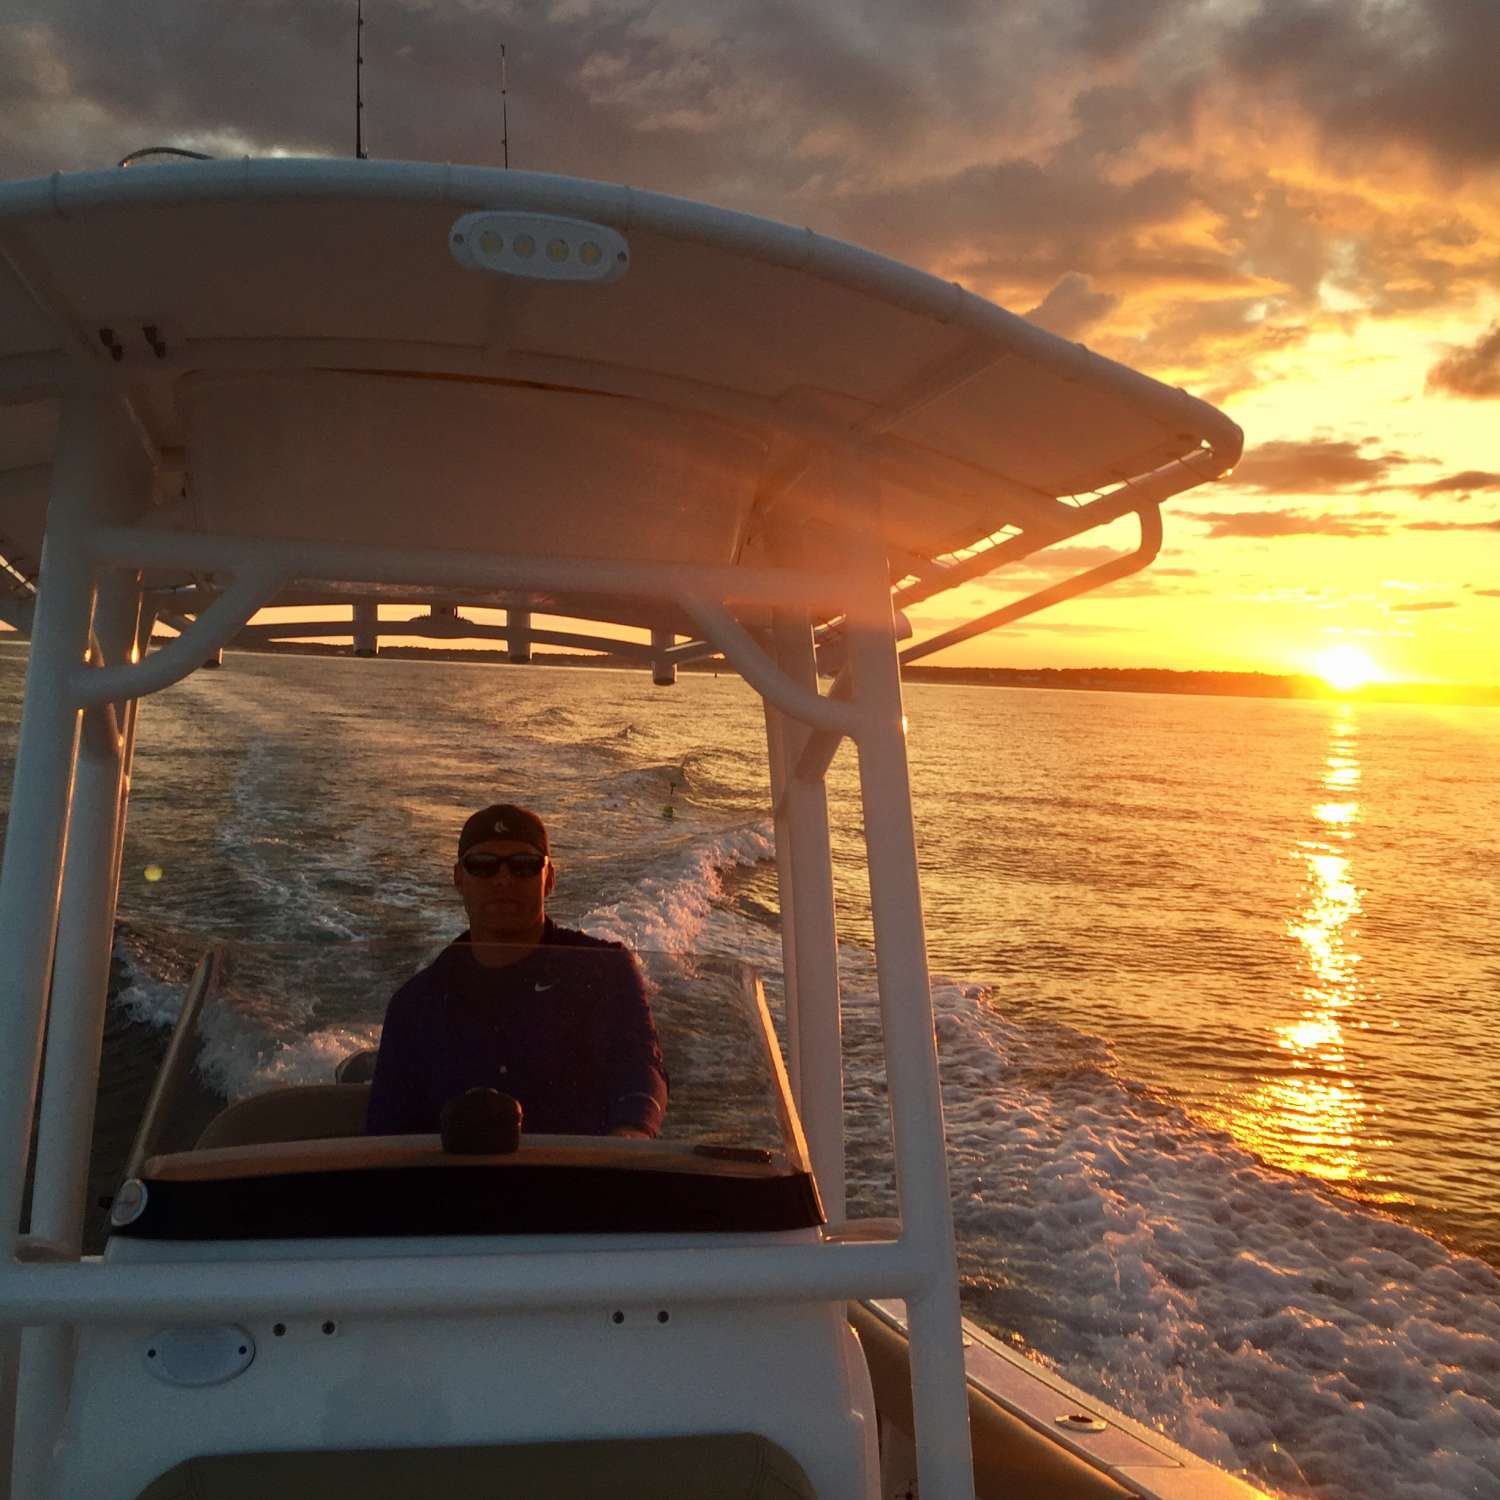 Title: Paradise Found - On board their Sportsman Open 212 Center Console - Location: Eliot, Maine. Participating in the Photo Contest #SportsmanSeptember2017